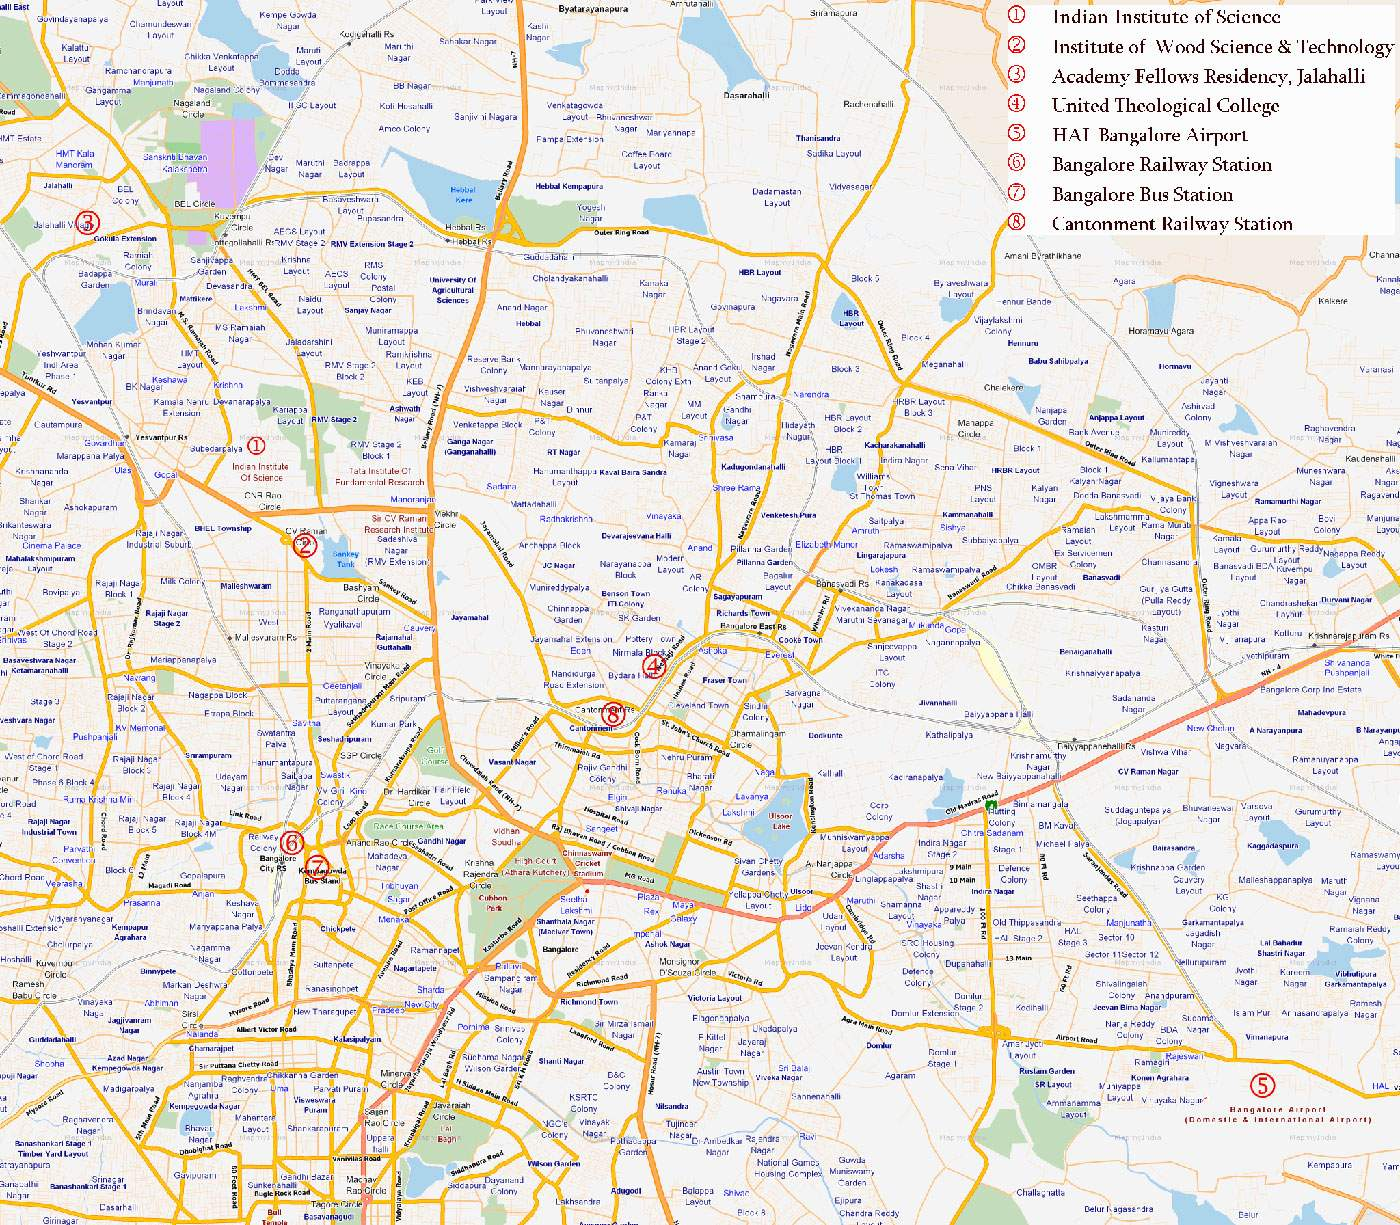 Bangalore City Map Pdf Large Bangalore Maps for Free Download and Print | High Resolution